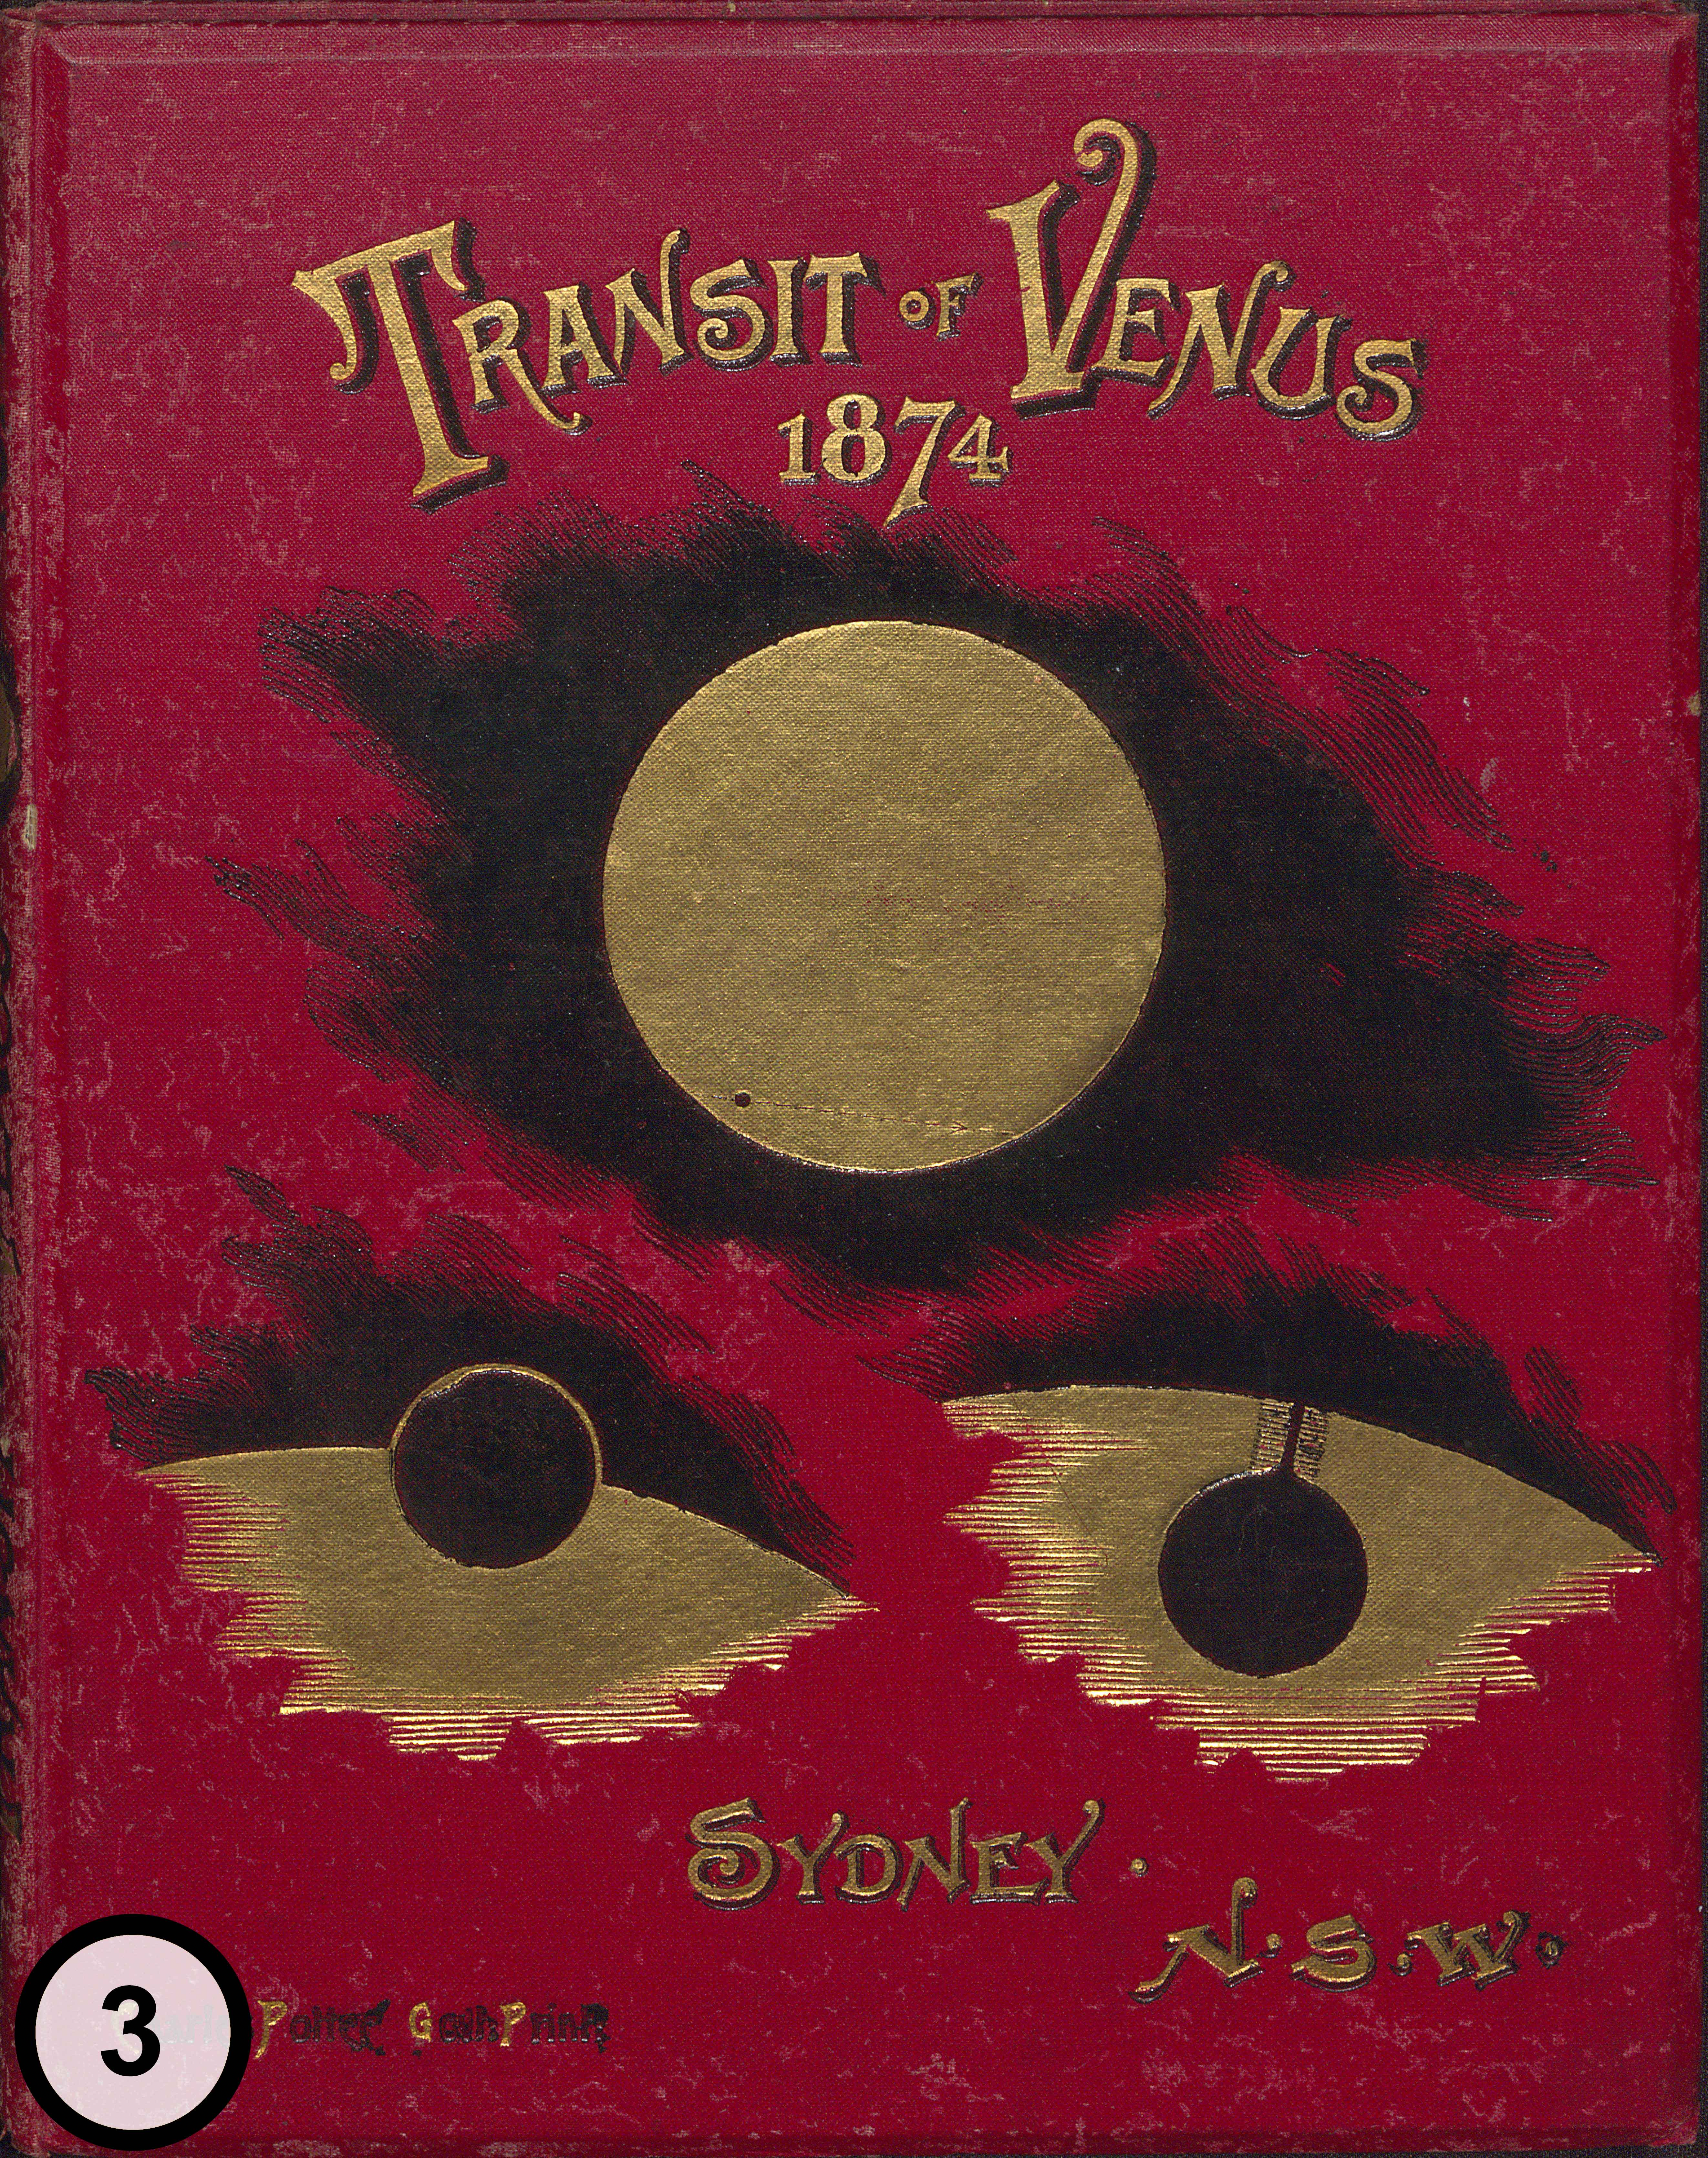 Henry Chamberlain Russell's Observations on the Transit of Venus, front cover